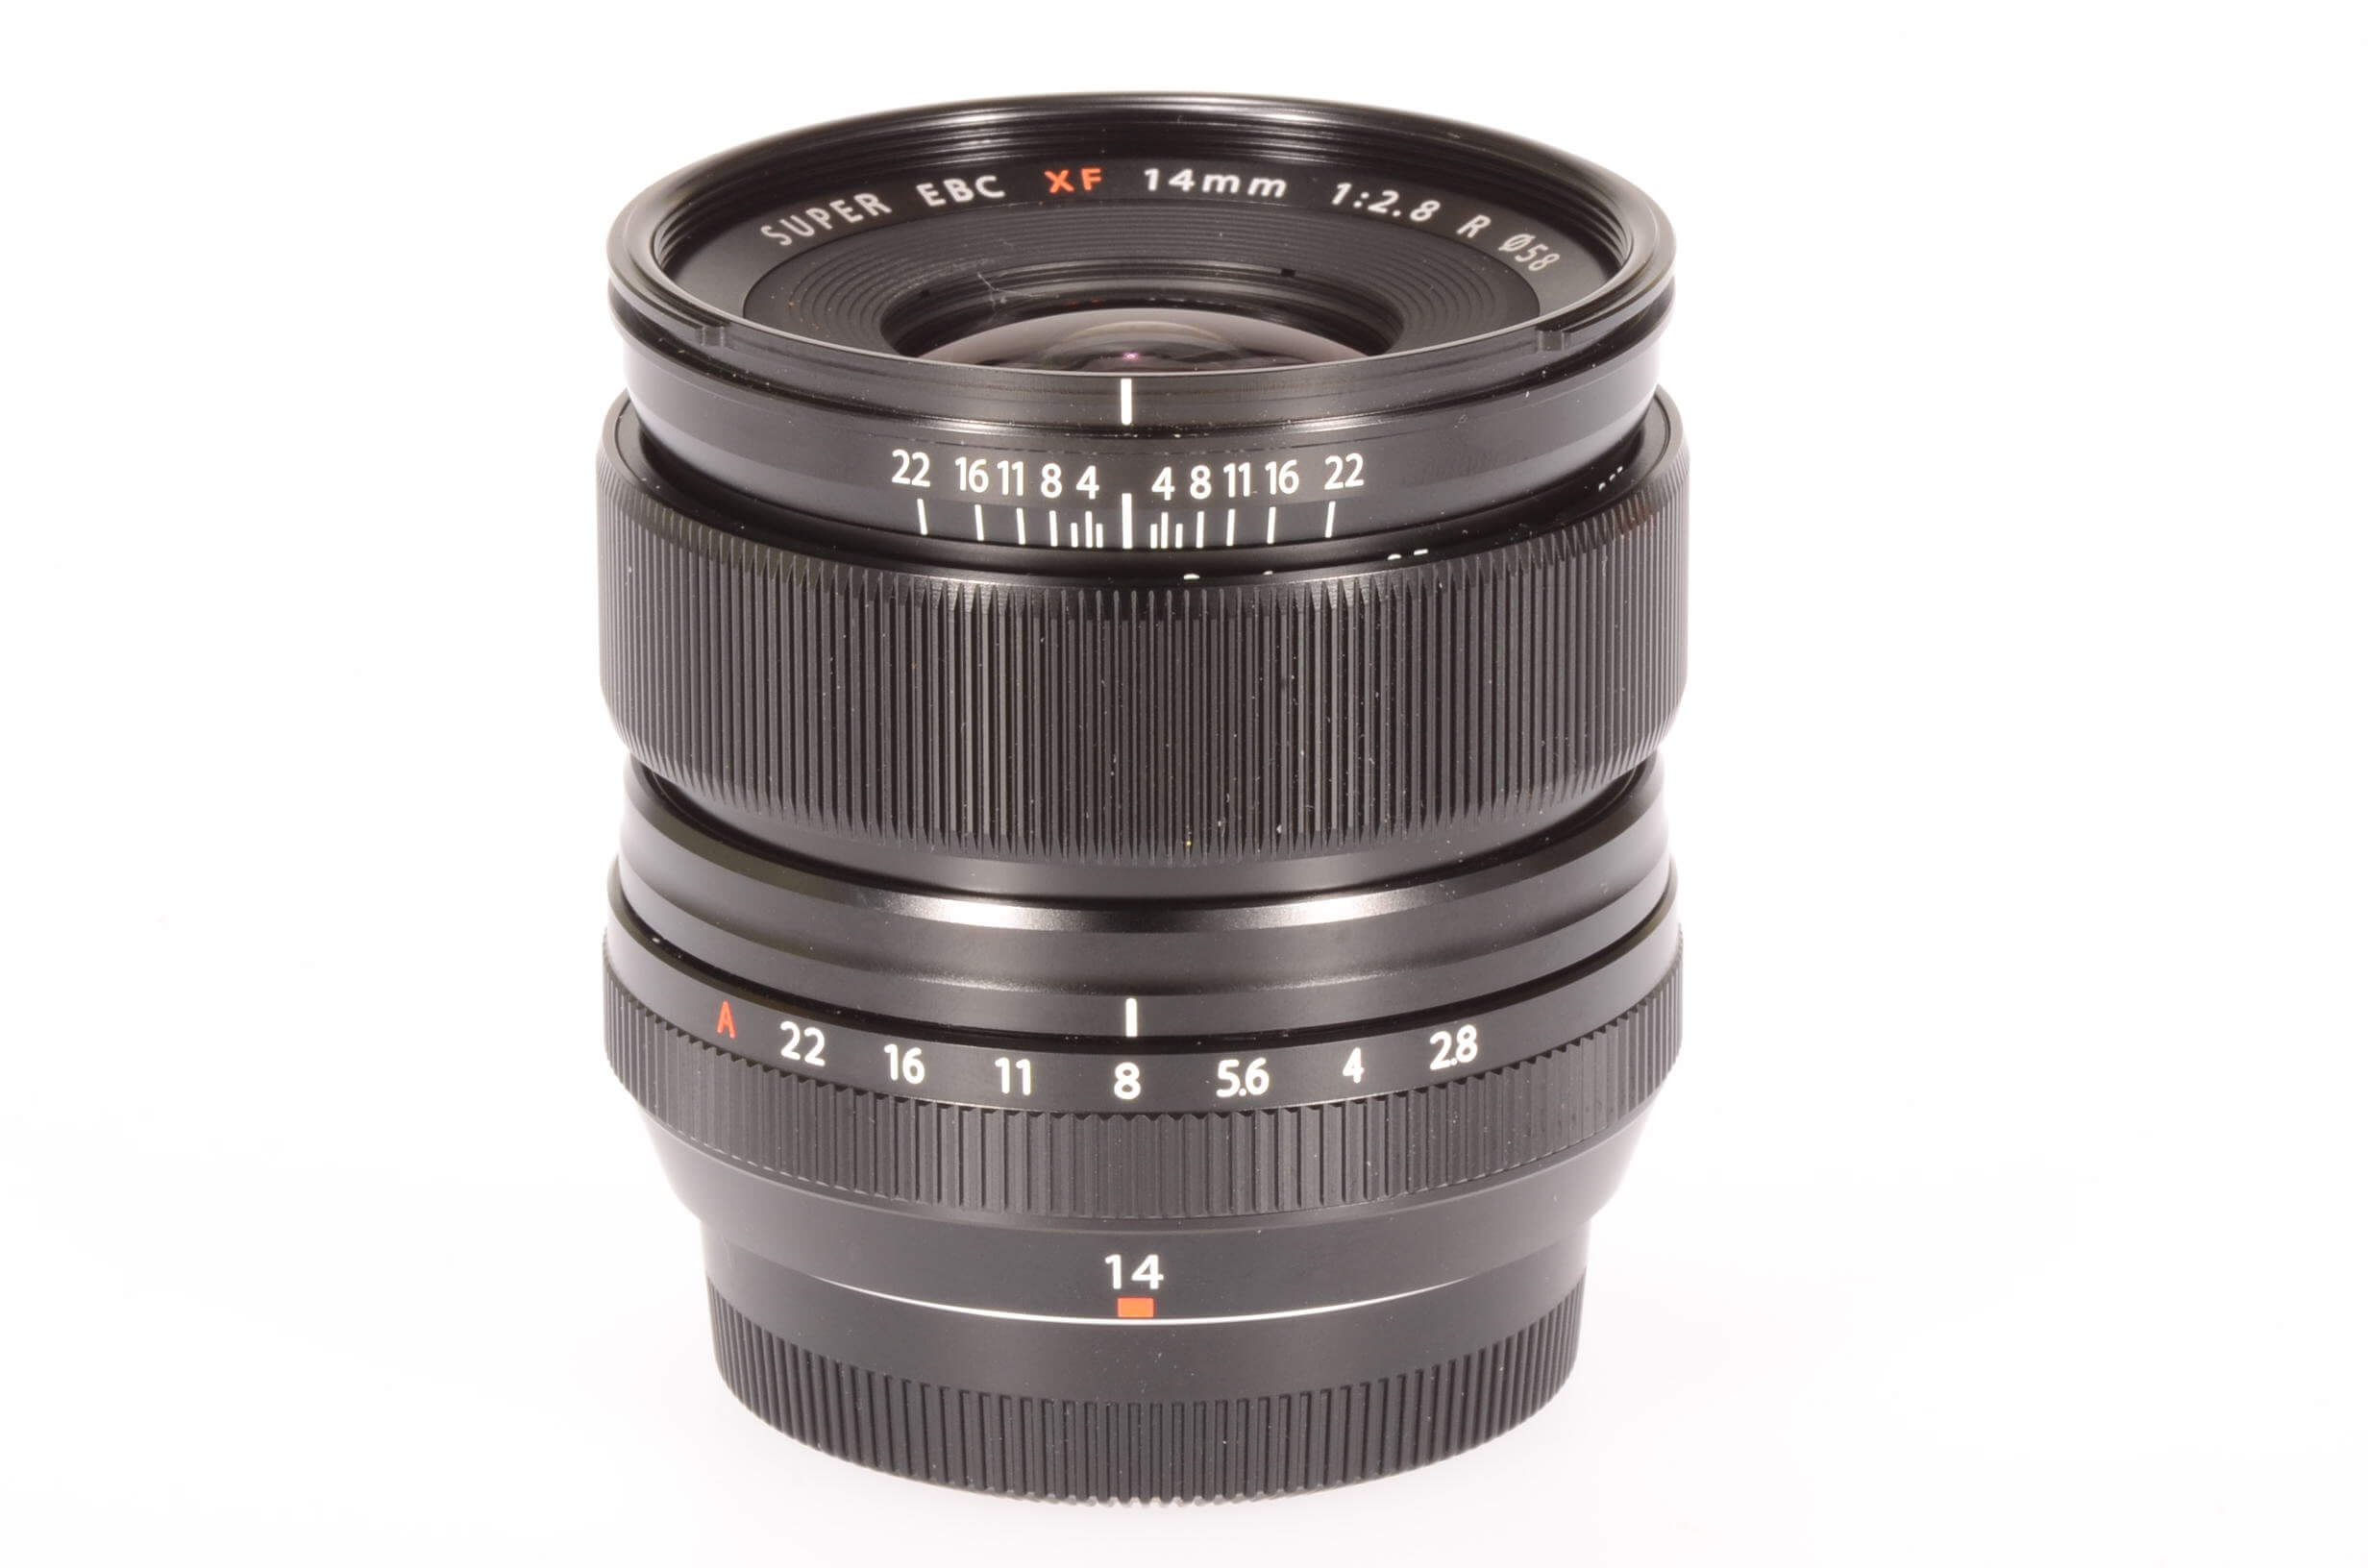 Fuji 14mm f2.8 XF R lens, UK supplied, 2 weeks old!